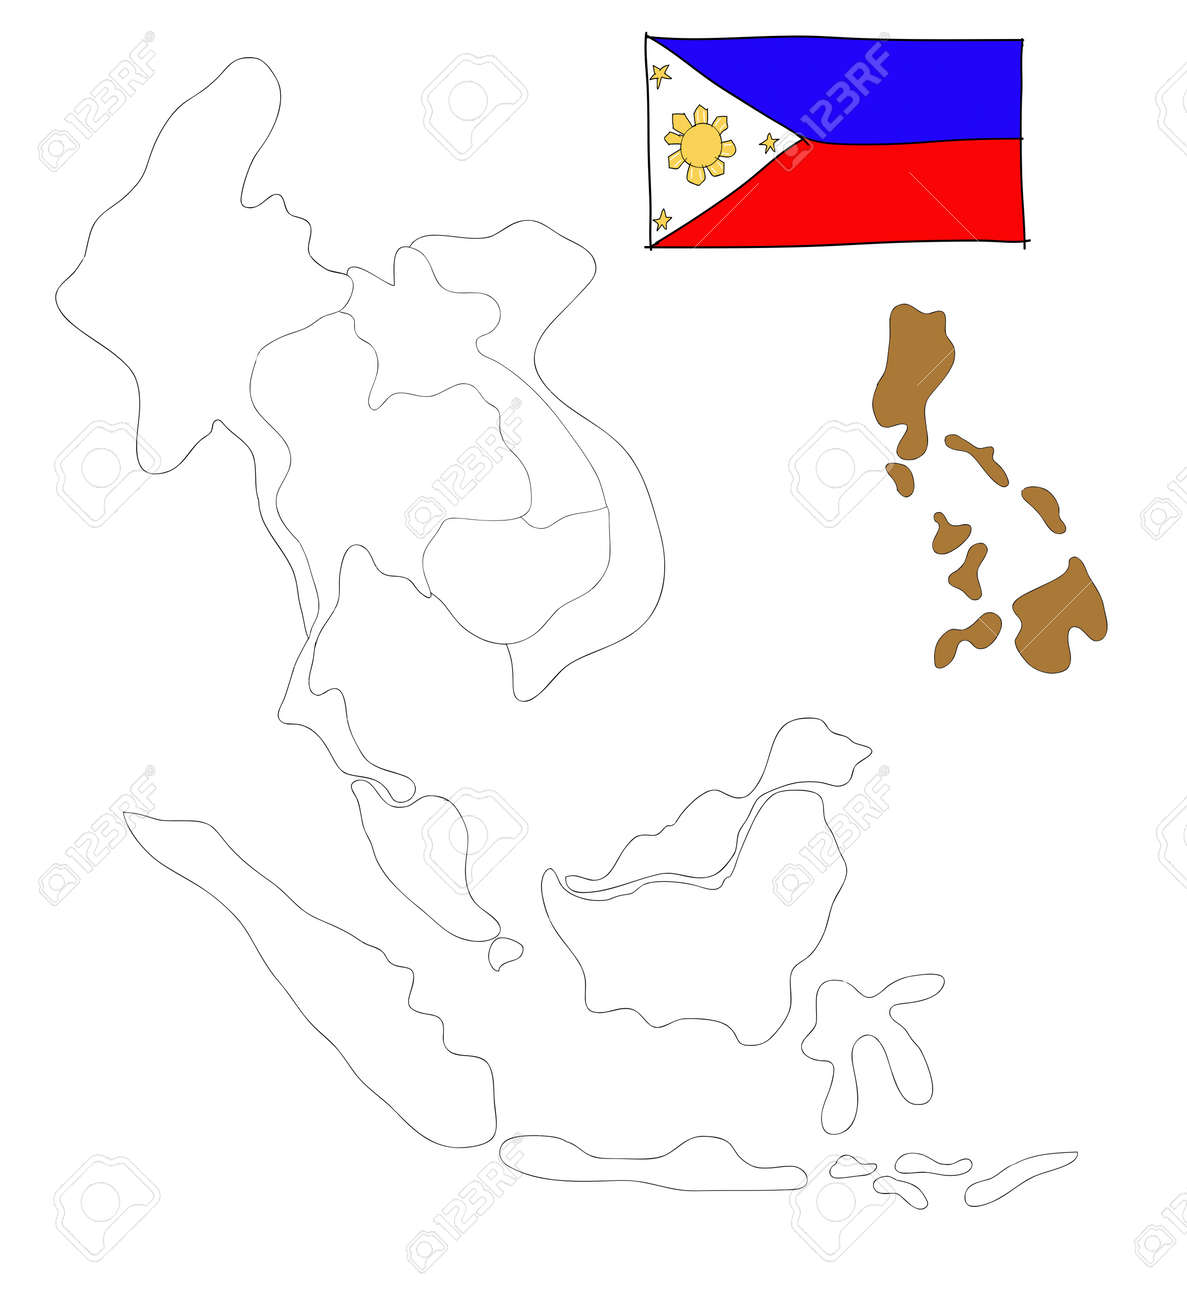 Drawing Map Of South East Asia Countries That Will Be Member Of AEC With  Philippines Flag